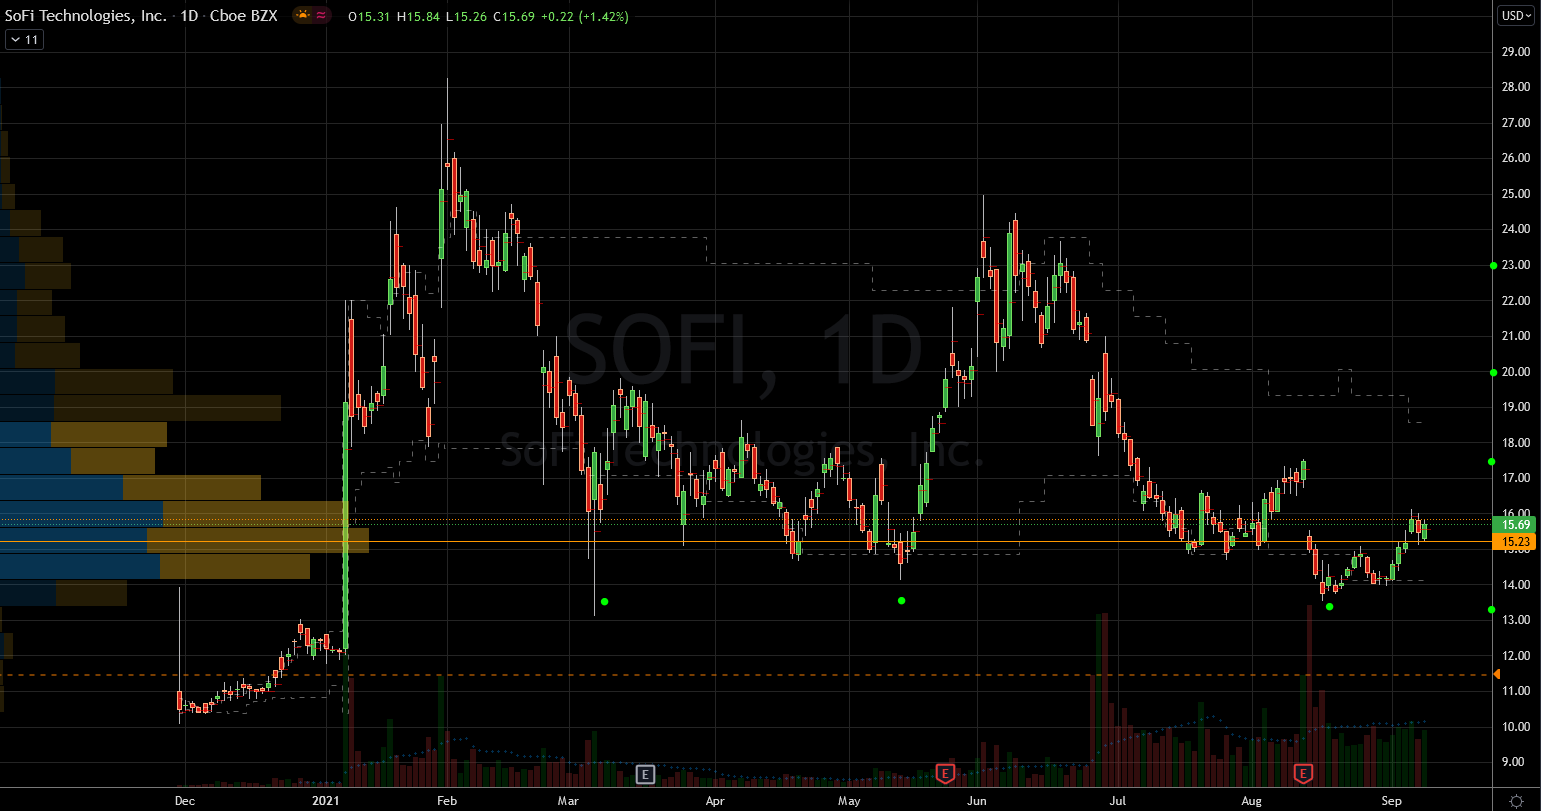 SOFI Stock Chart Showing Progress and Upside Potential